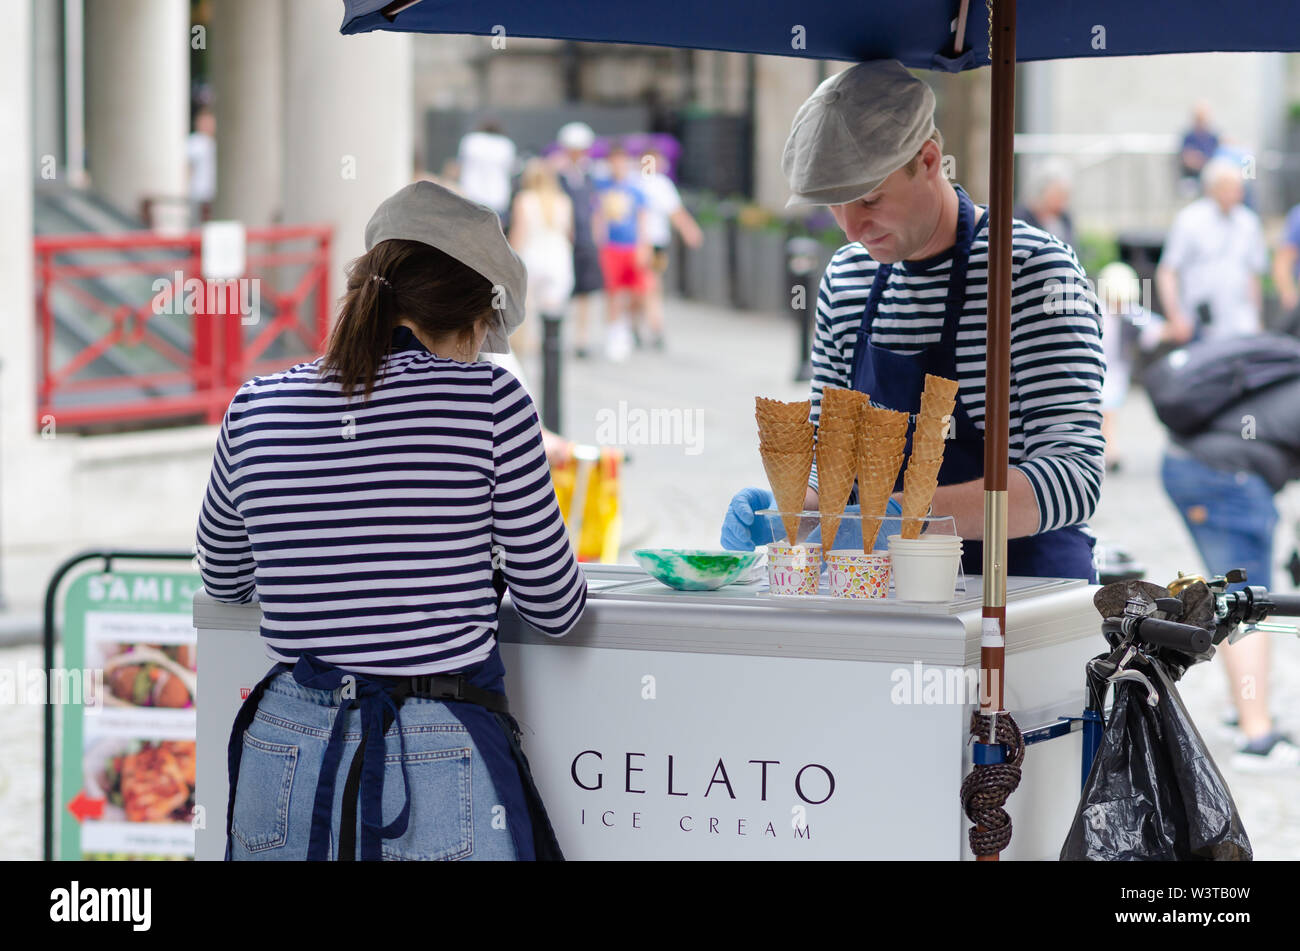 Young girl and a man are selling Gelato ice cream in the London street, near to the Tower Bridge. Stock Photo